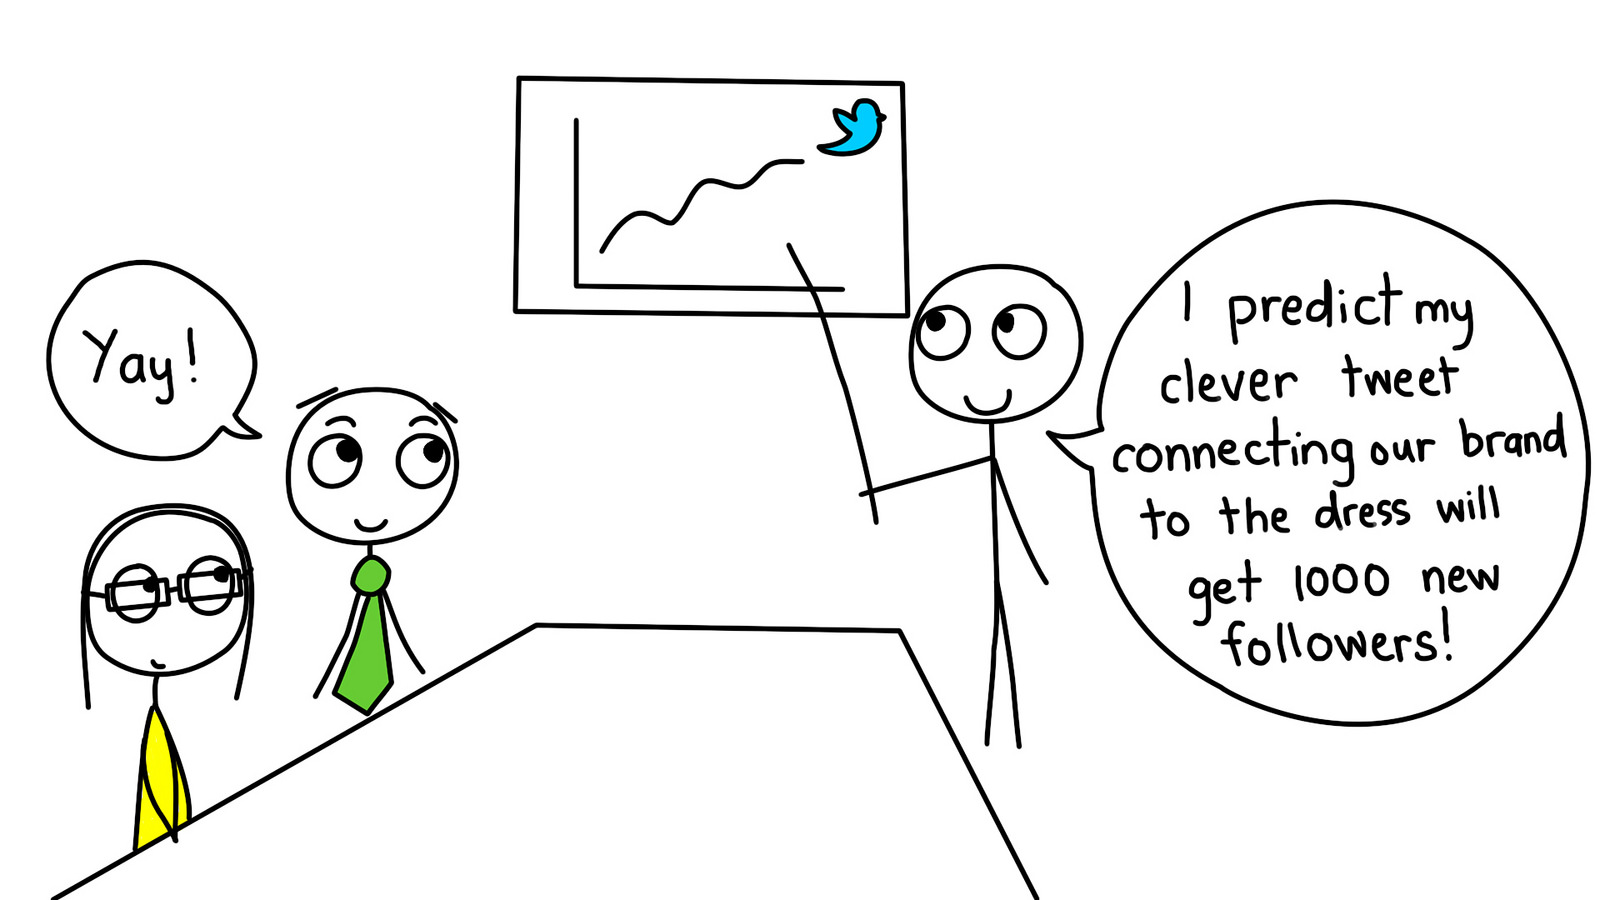 84e7b54e9fb Three stick figures gathered around a chart that depicts the Twitter logo  and an upward-